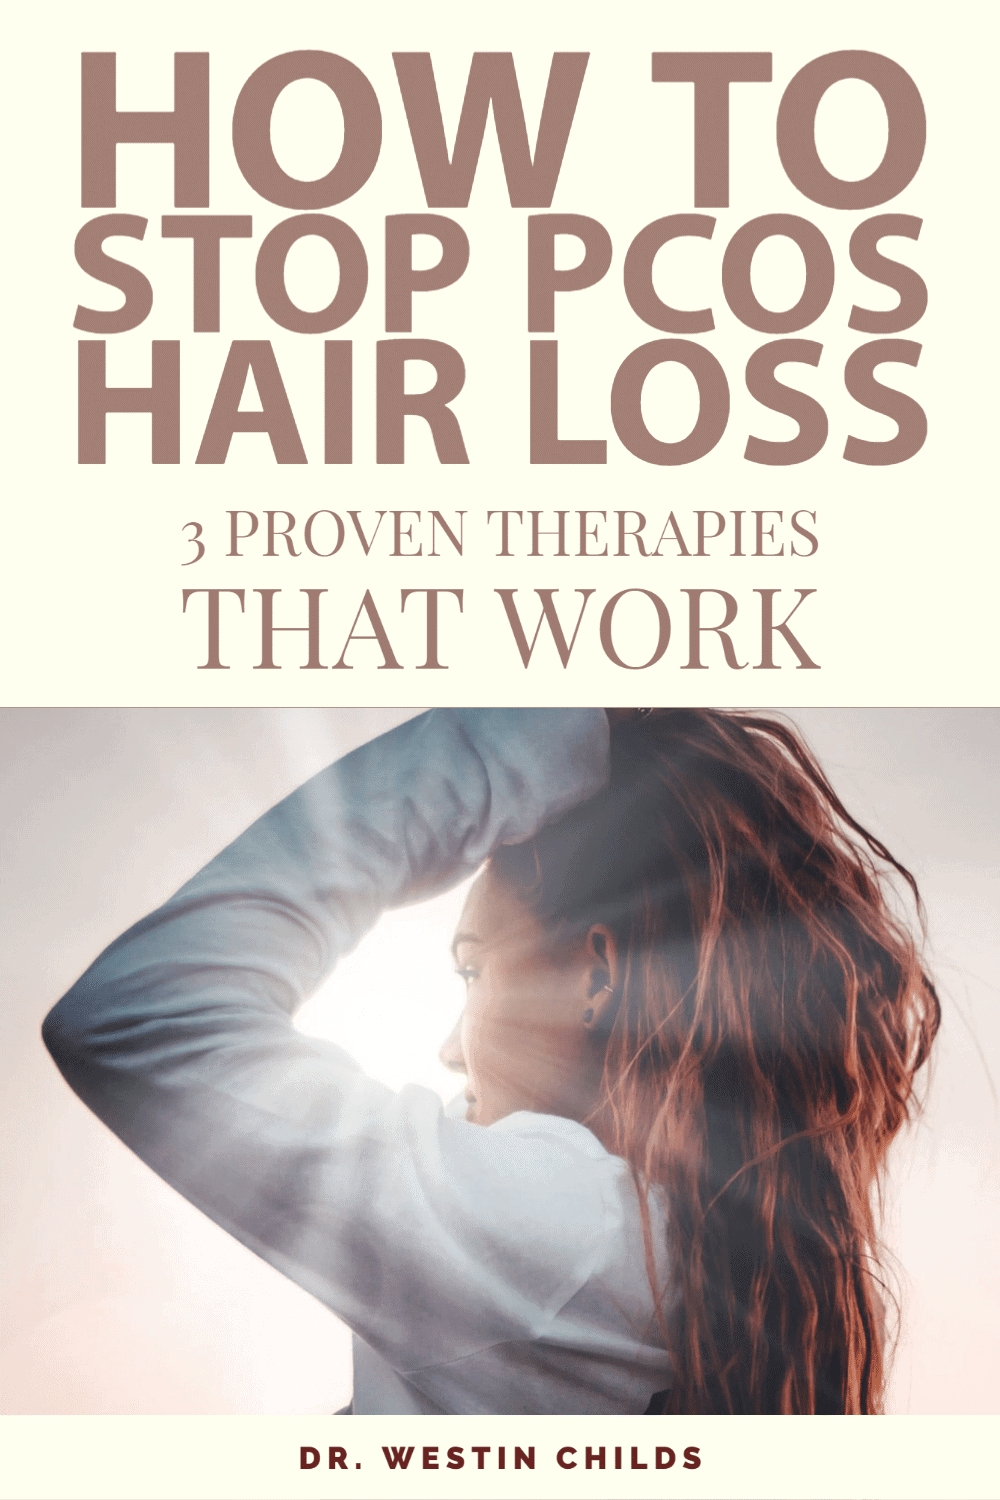 how to stop pcos hair loss with 3 treatments